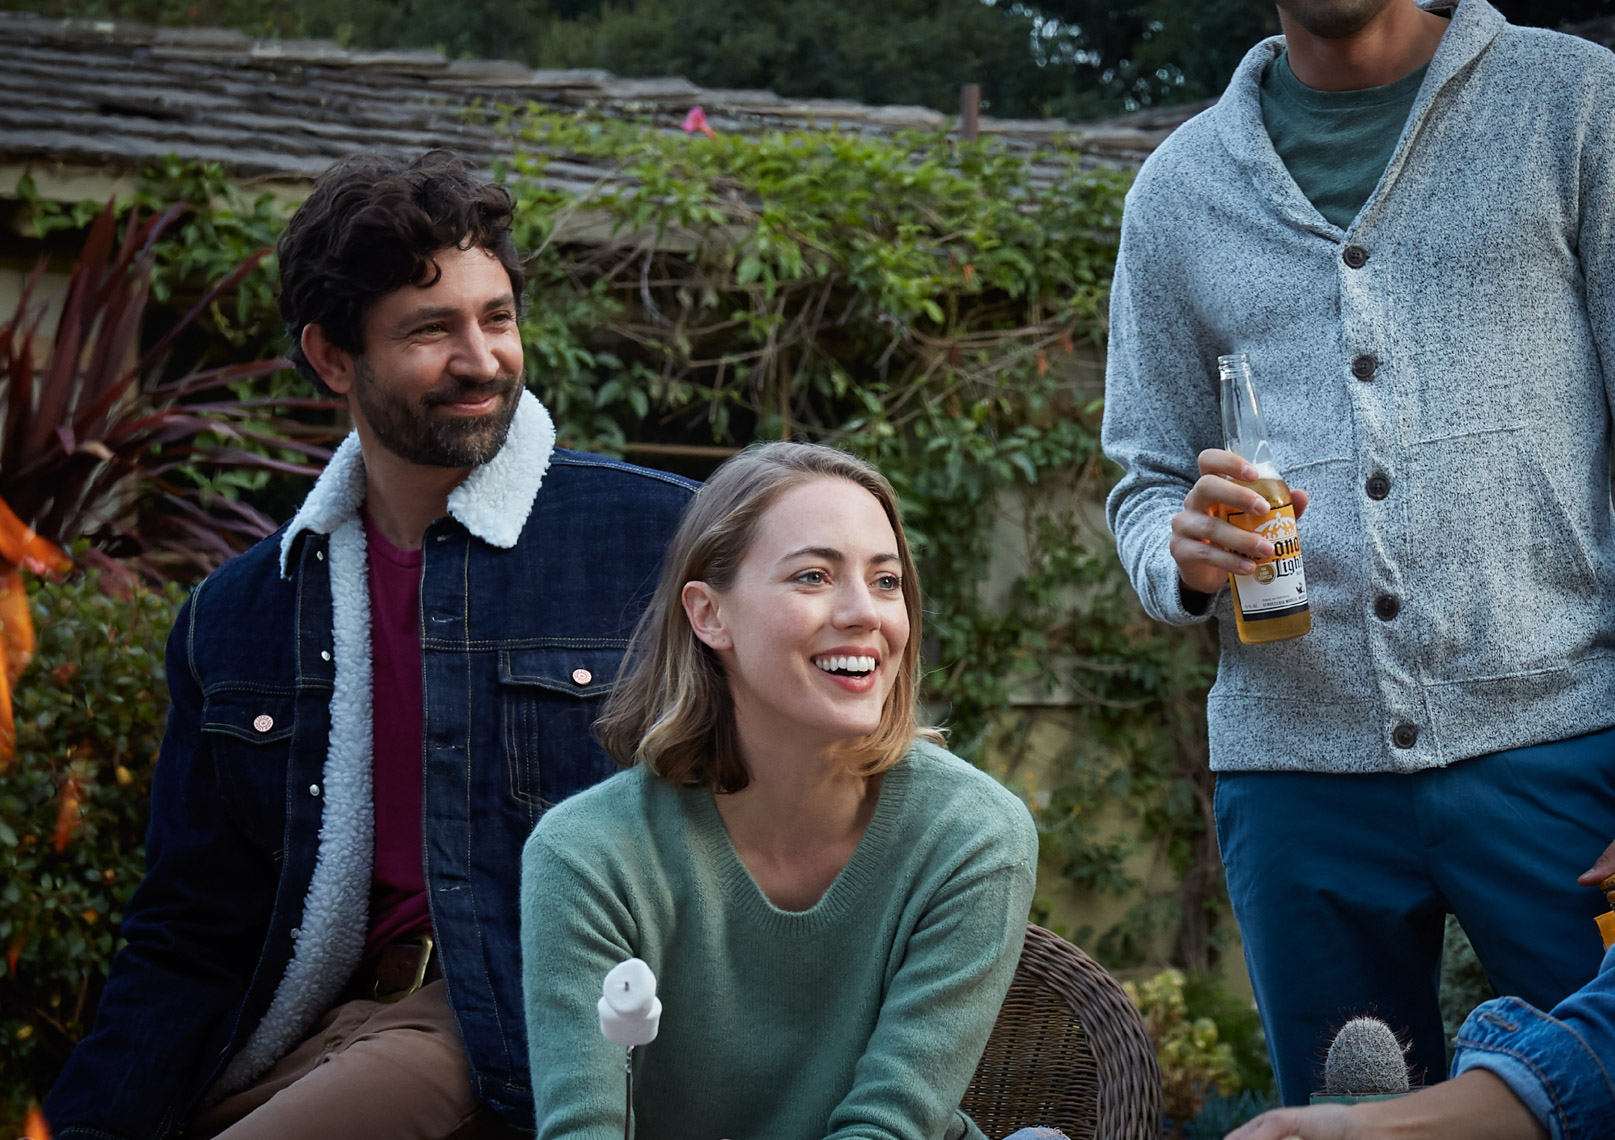 Woman and two men roasting marshmallows and drinking and laughing outside on a fall evening